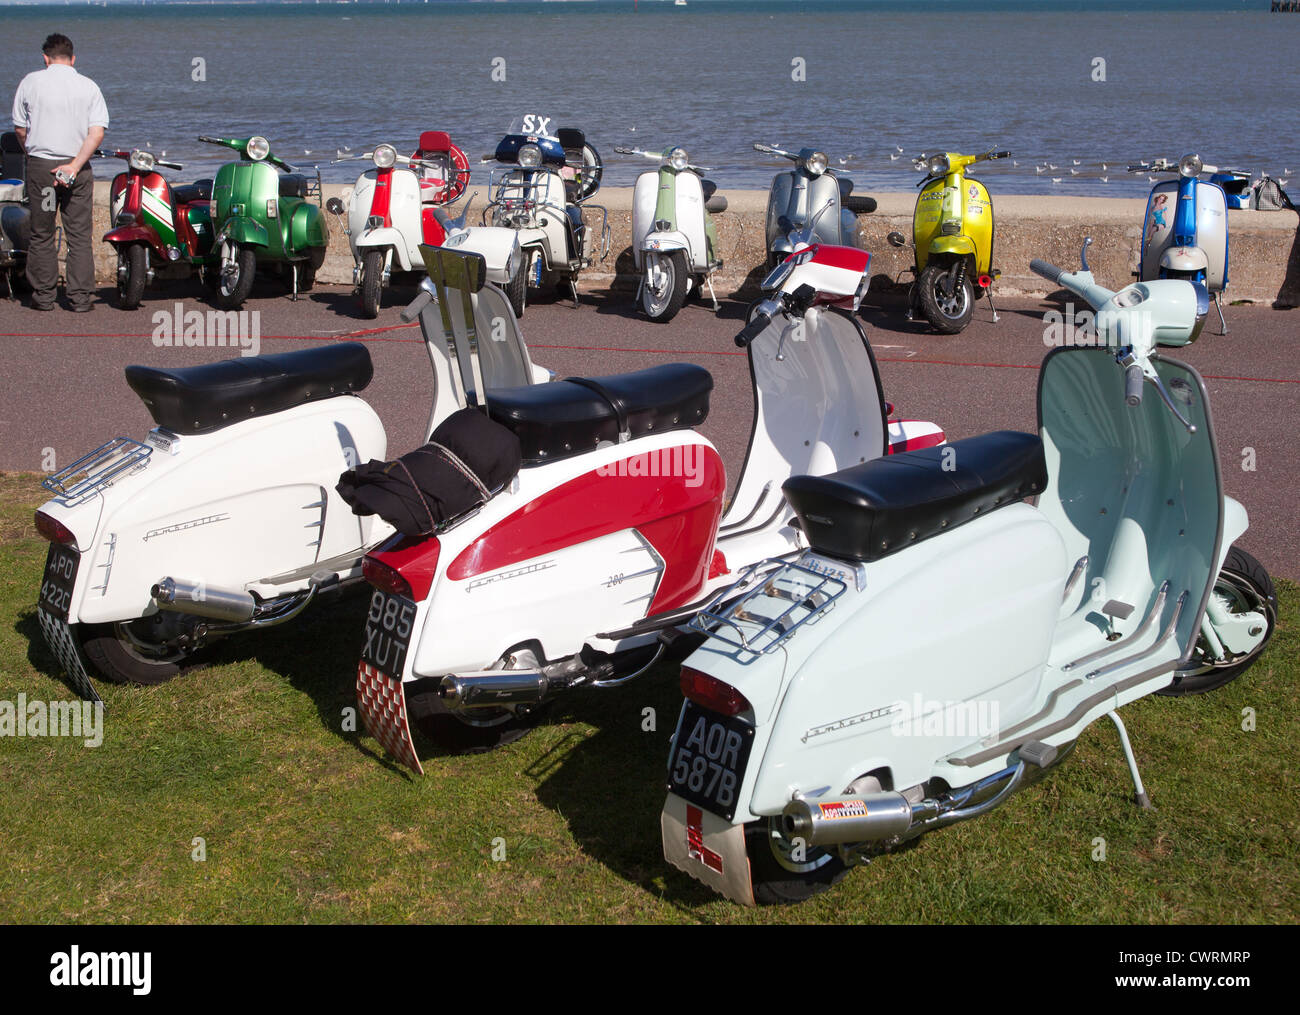 Scooters parked on seafront at Ryde - Stock Image